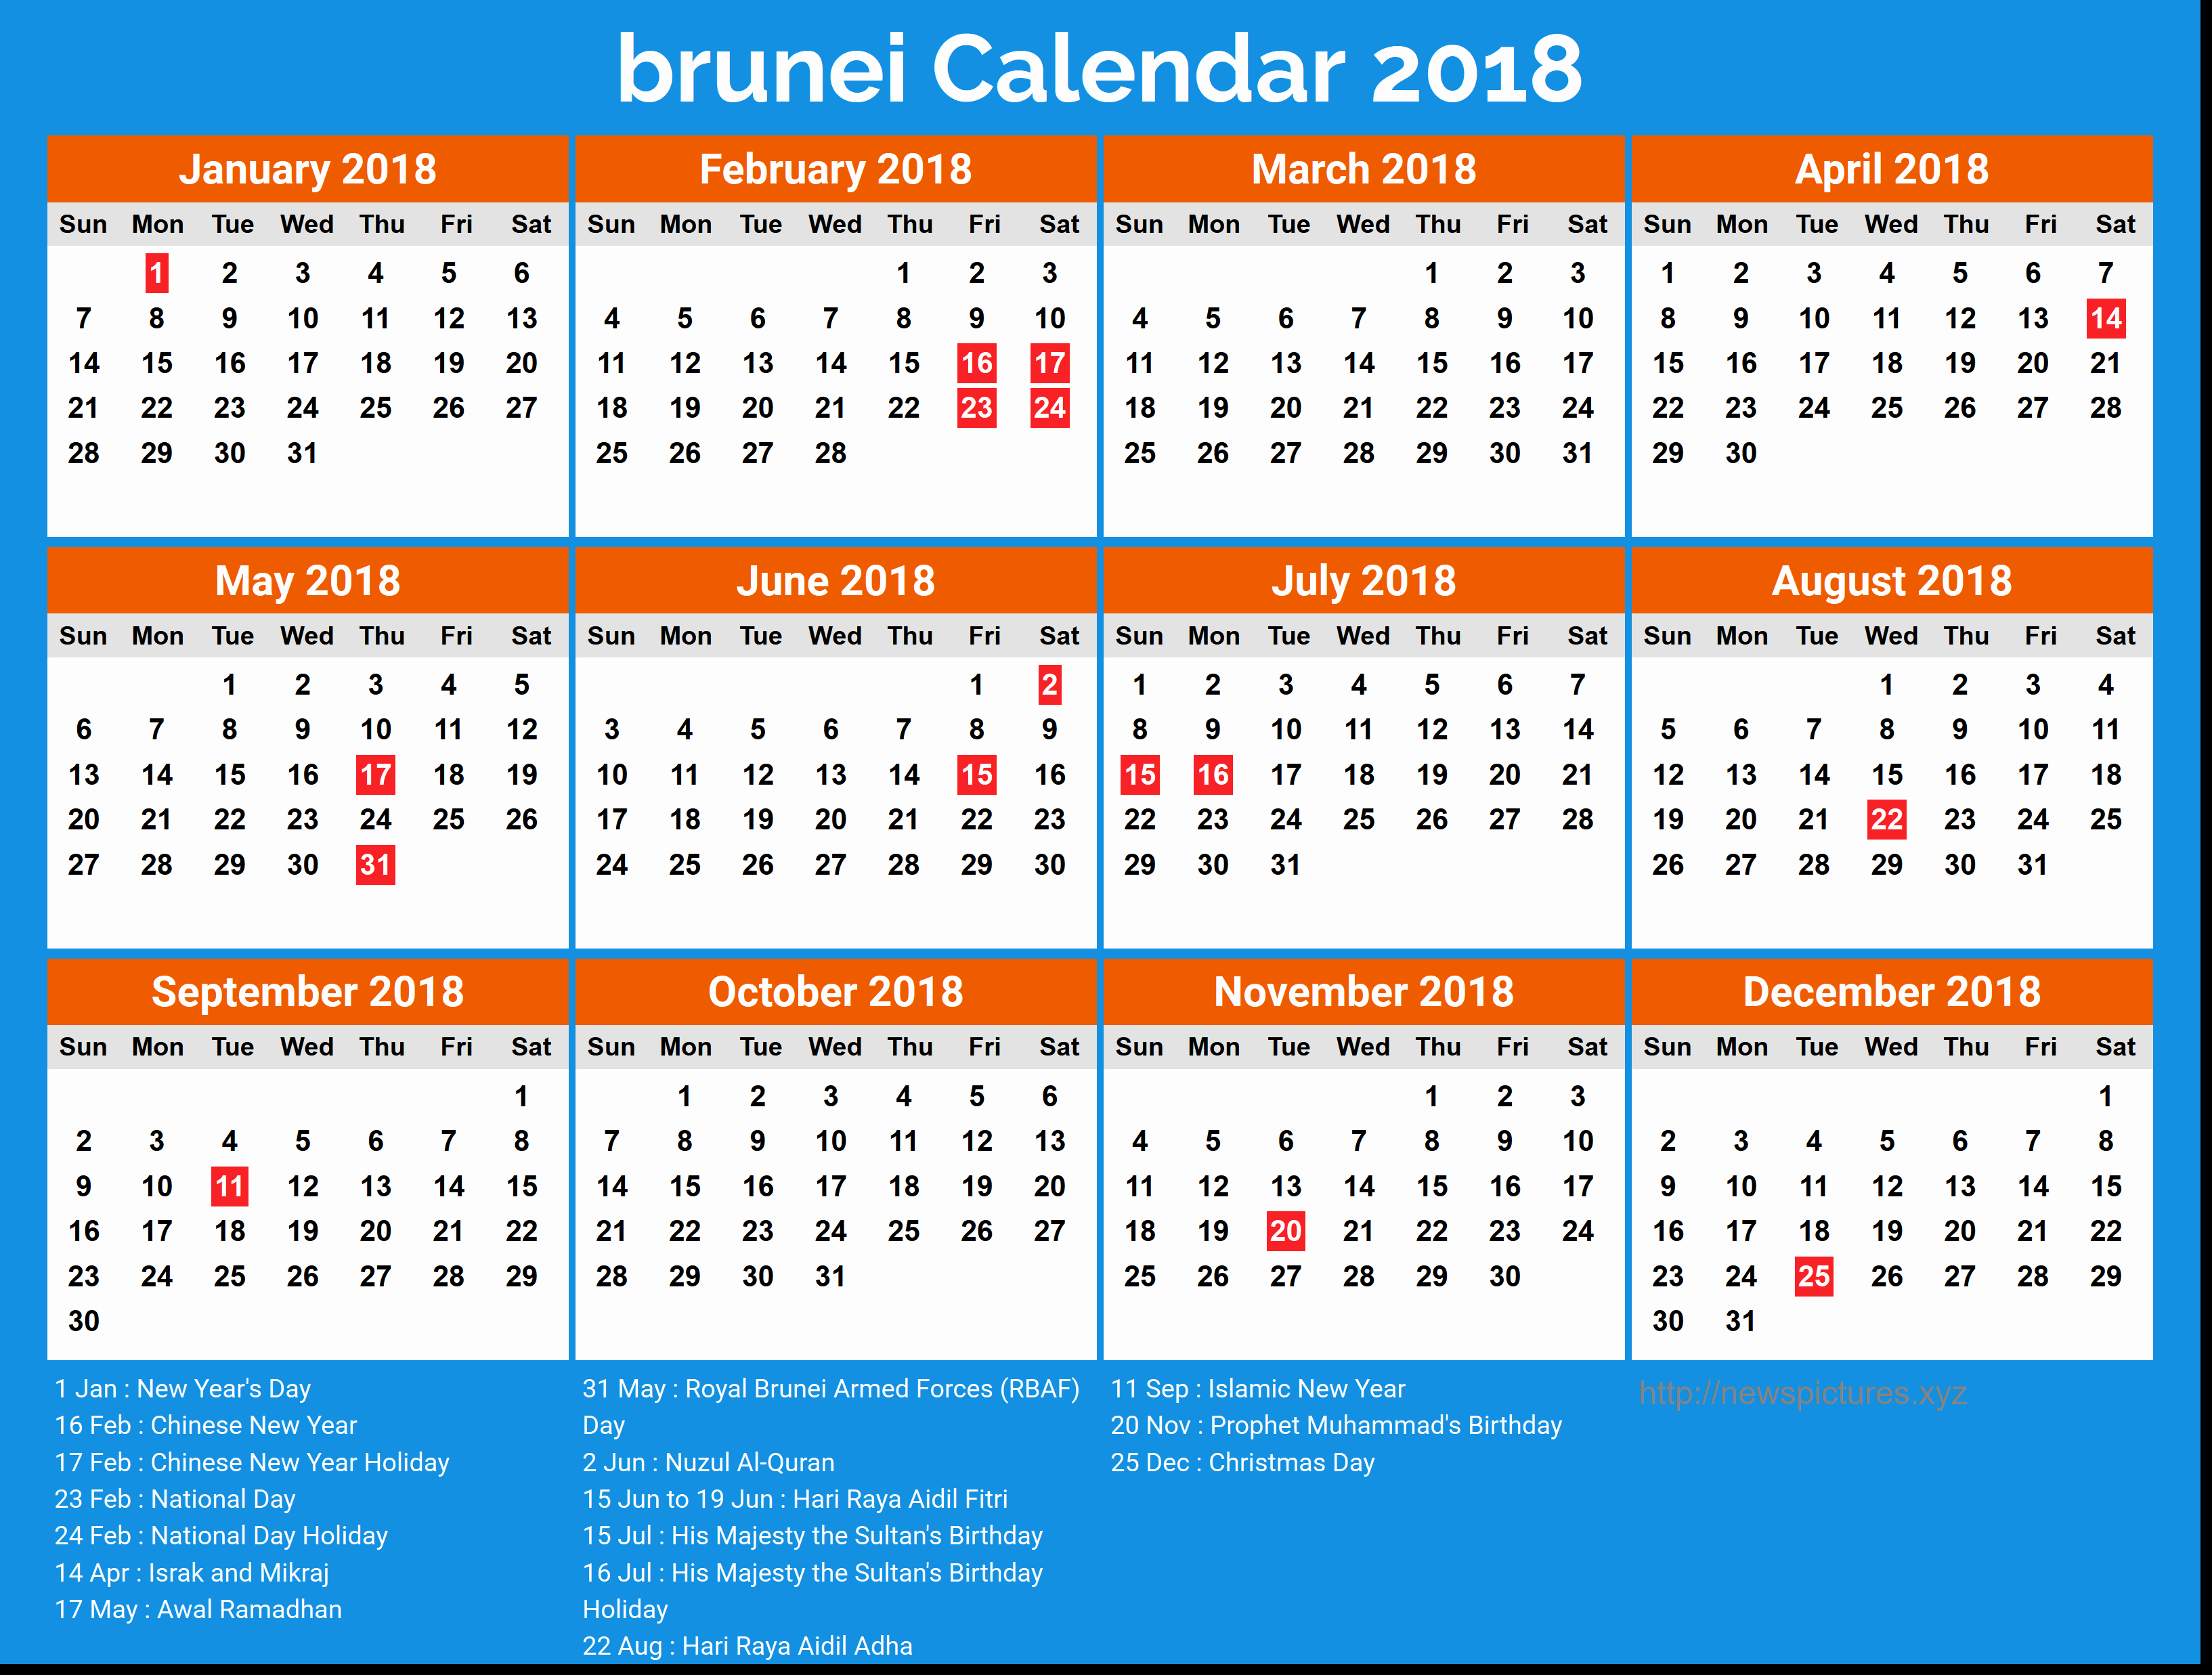 Free Printable Yearly Calendar 2018 Best Of 2018 Calendar Printable for Free Download India Usa Uk